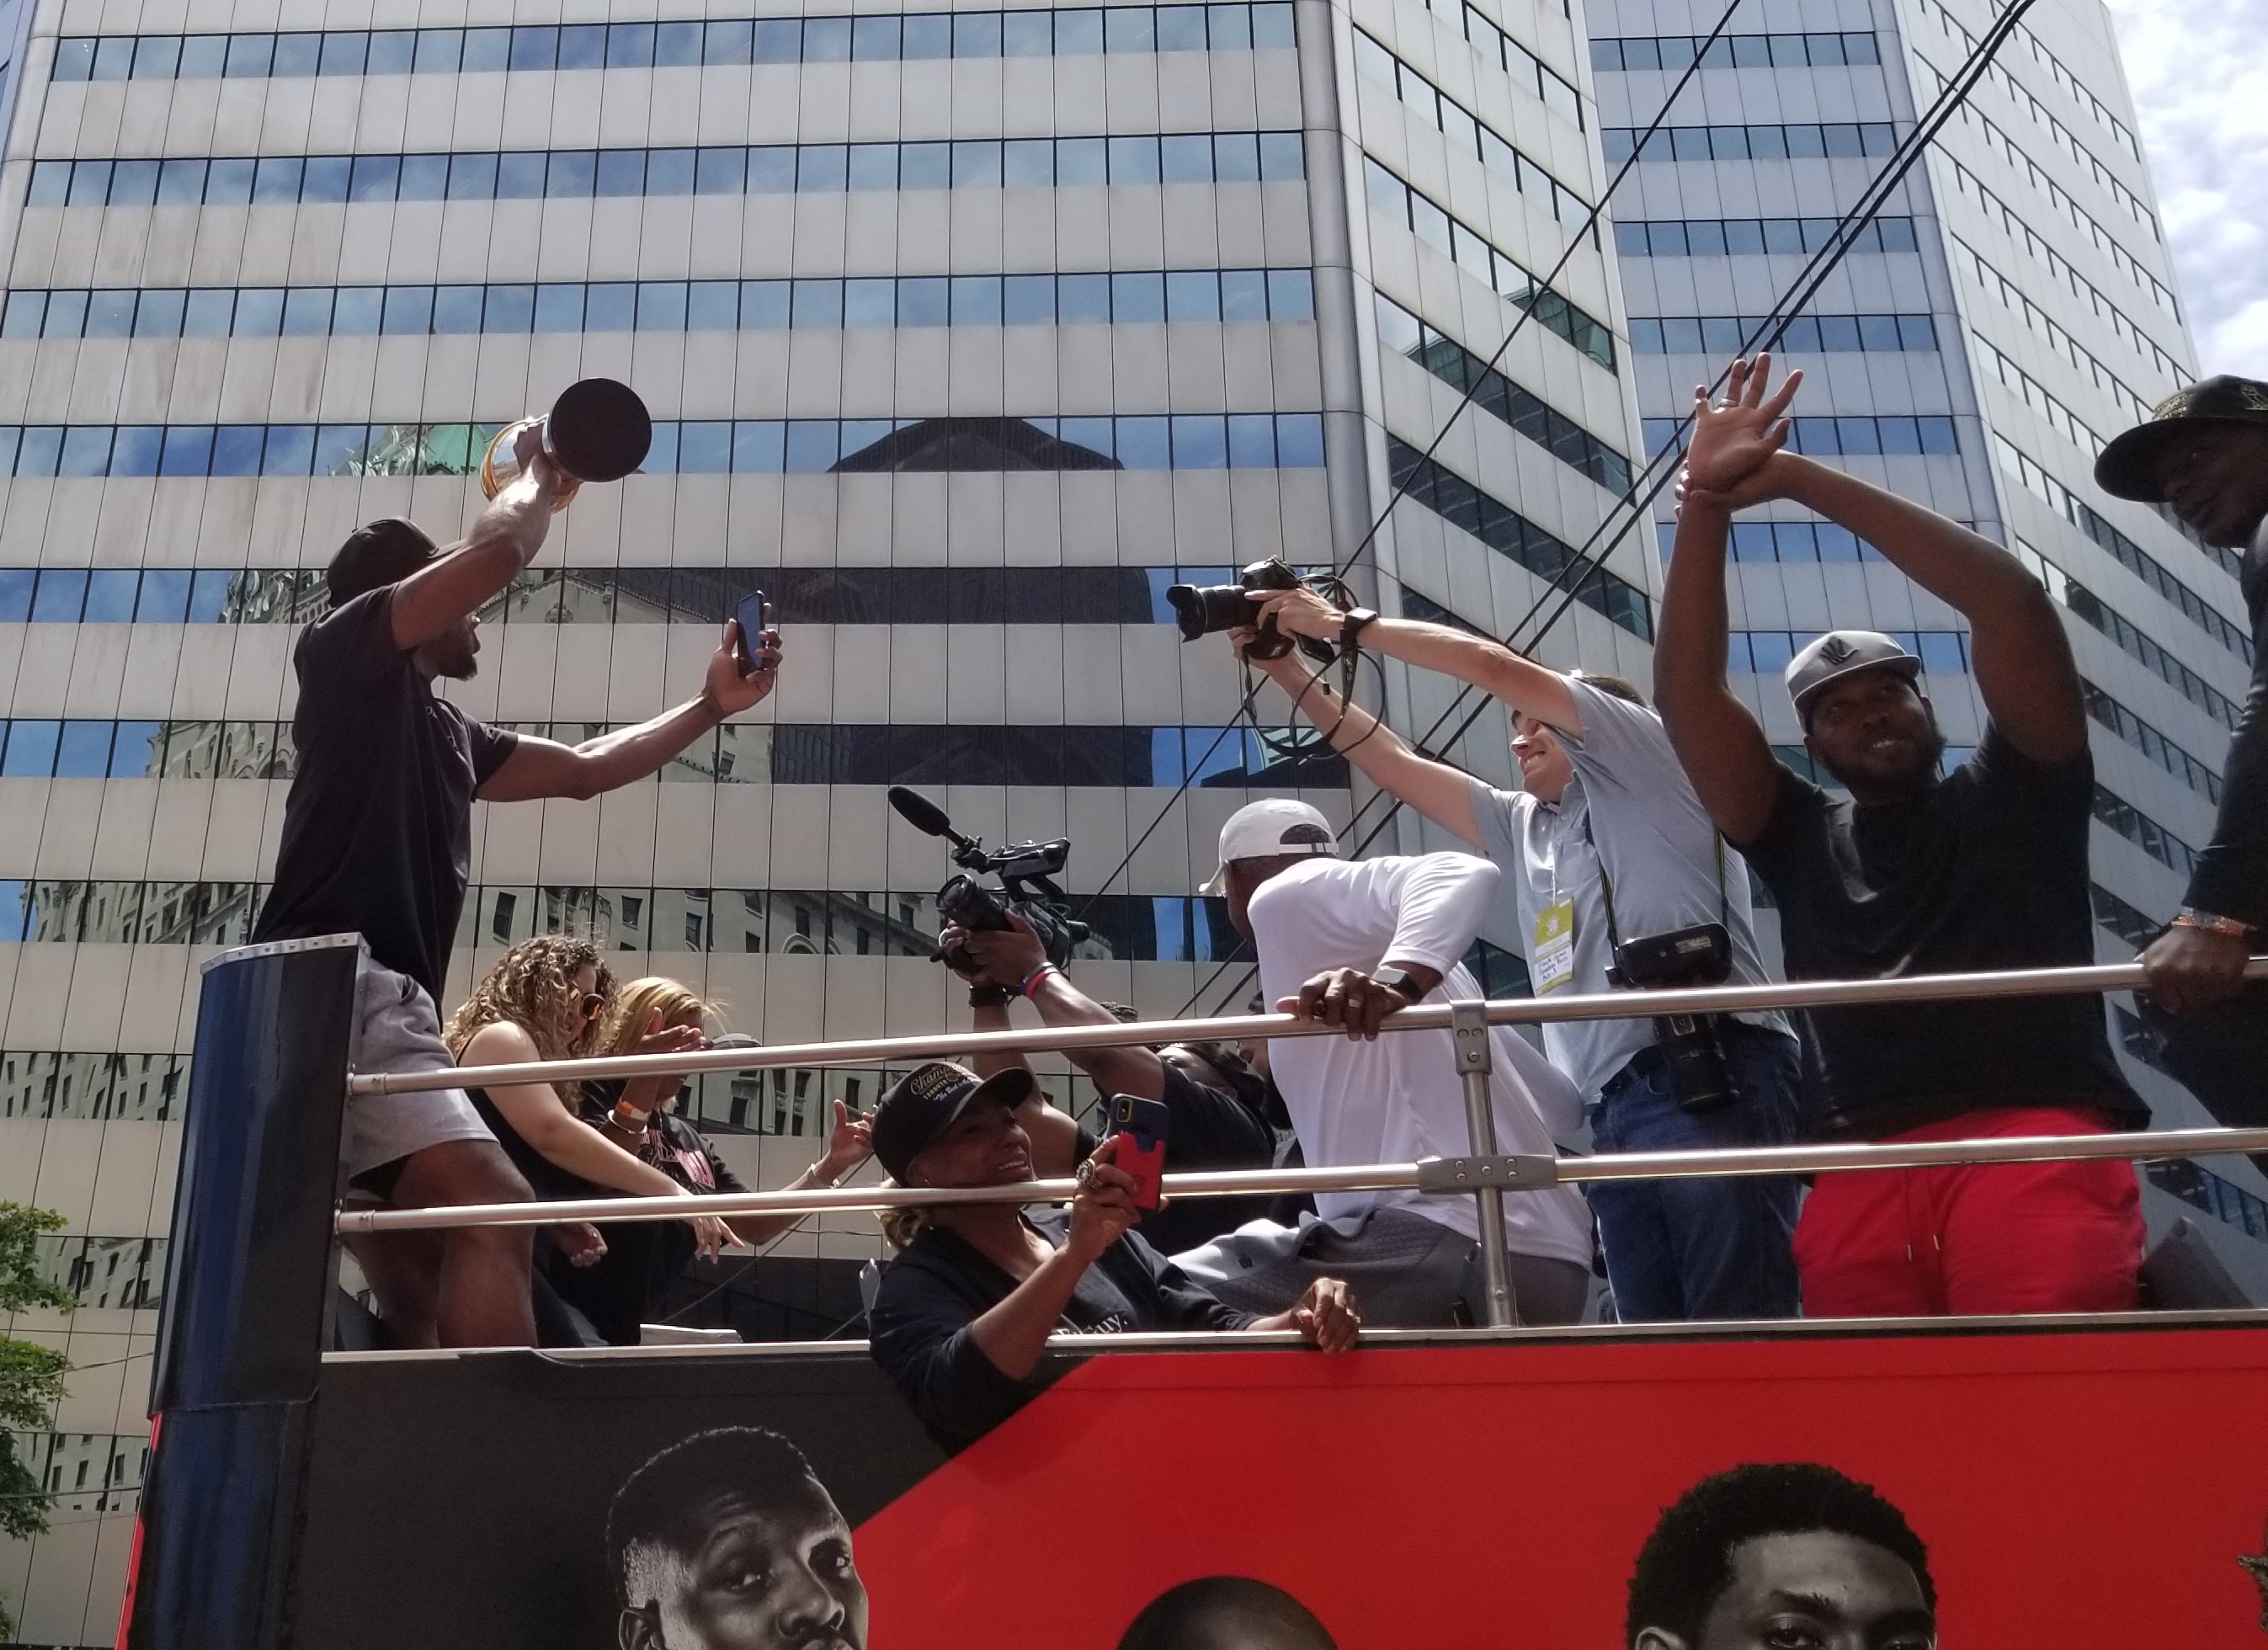 Kawhi Leonard at the Toronto Raptors NBA Championship Parade